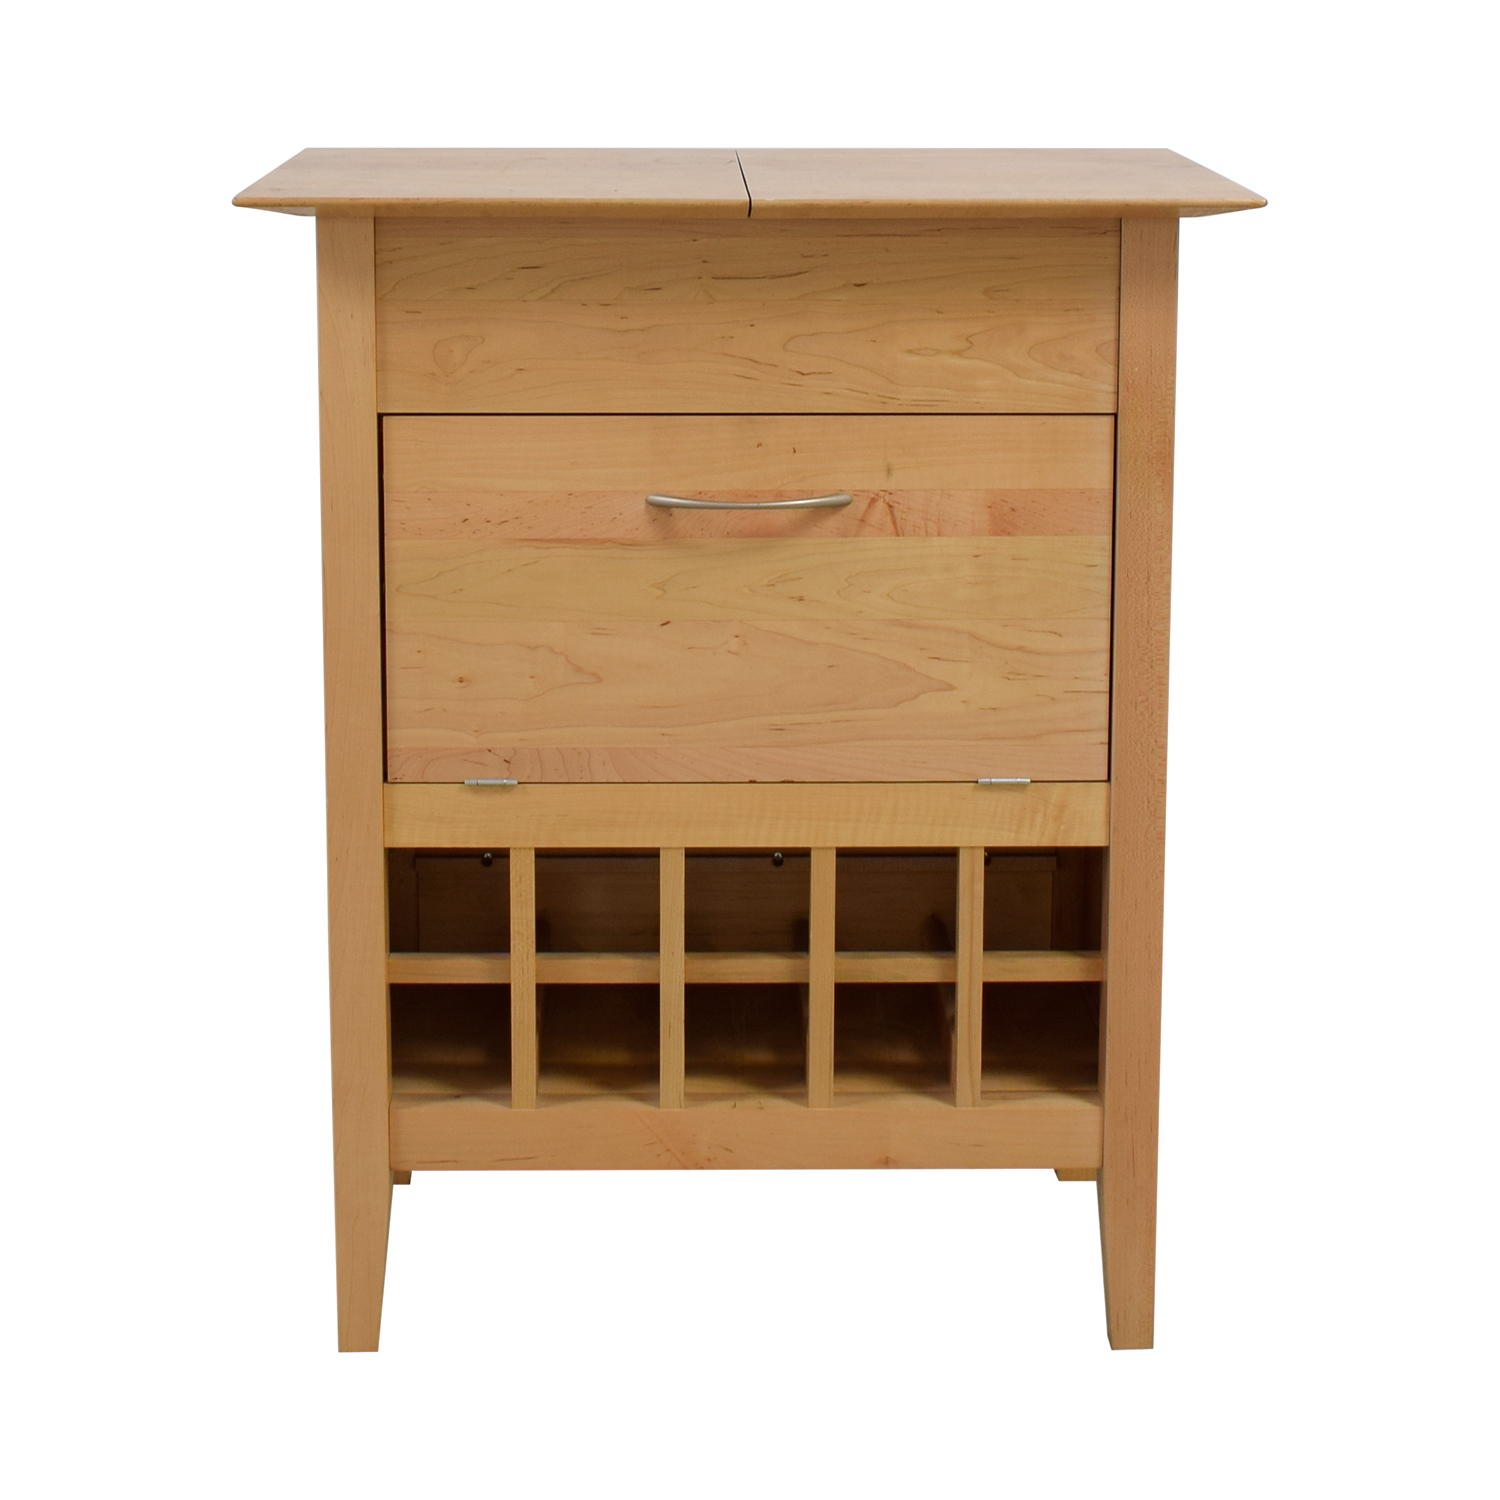 buy Crate & Barrel Natural Wine Bar Sideboard Crate & Barrel Cabinets & Sideboards